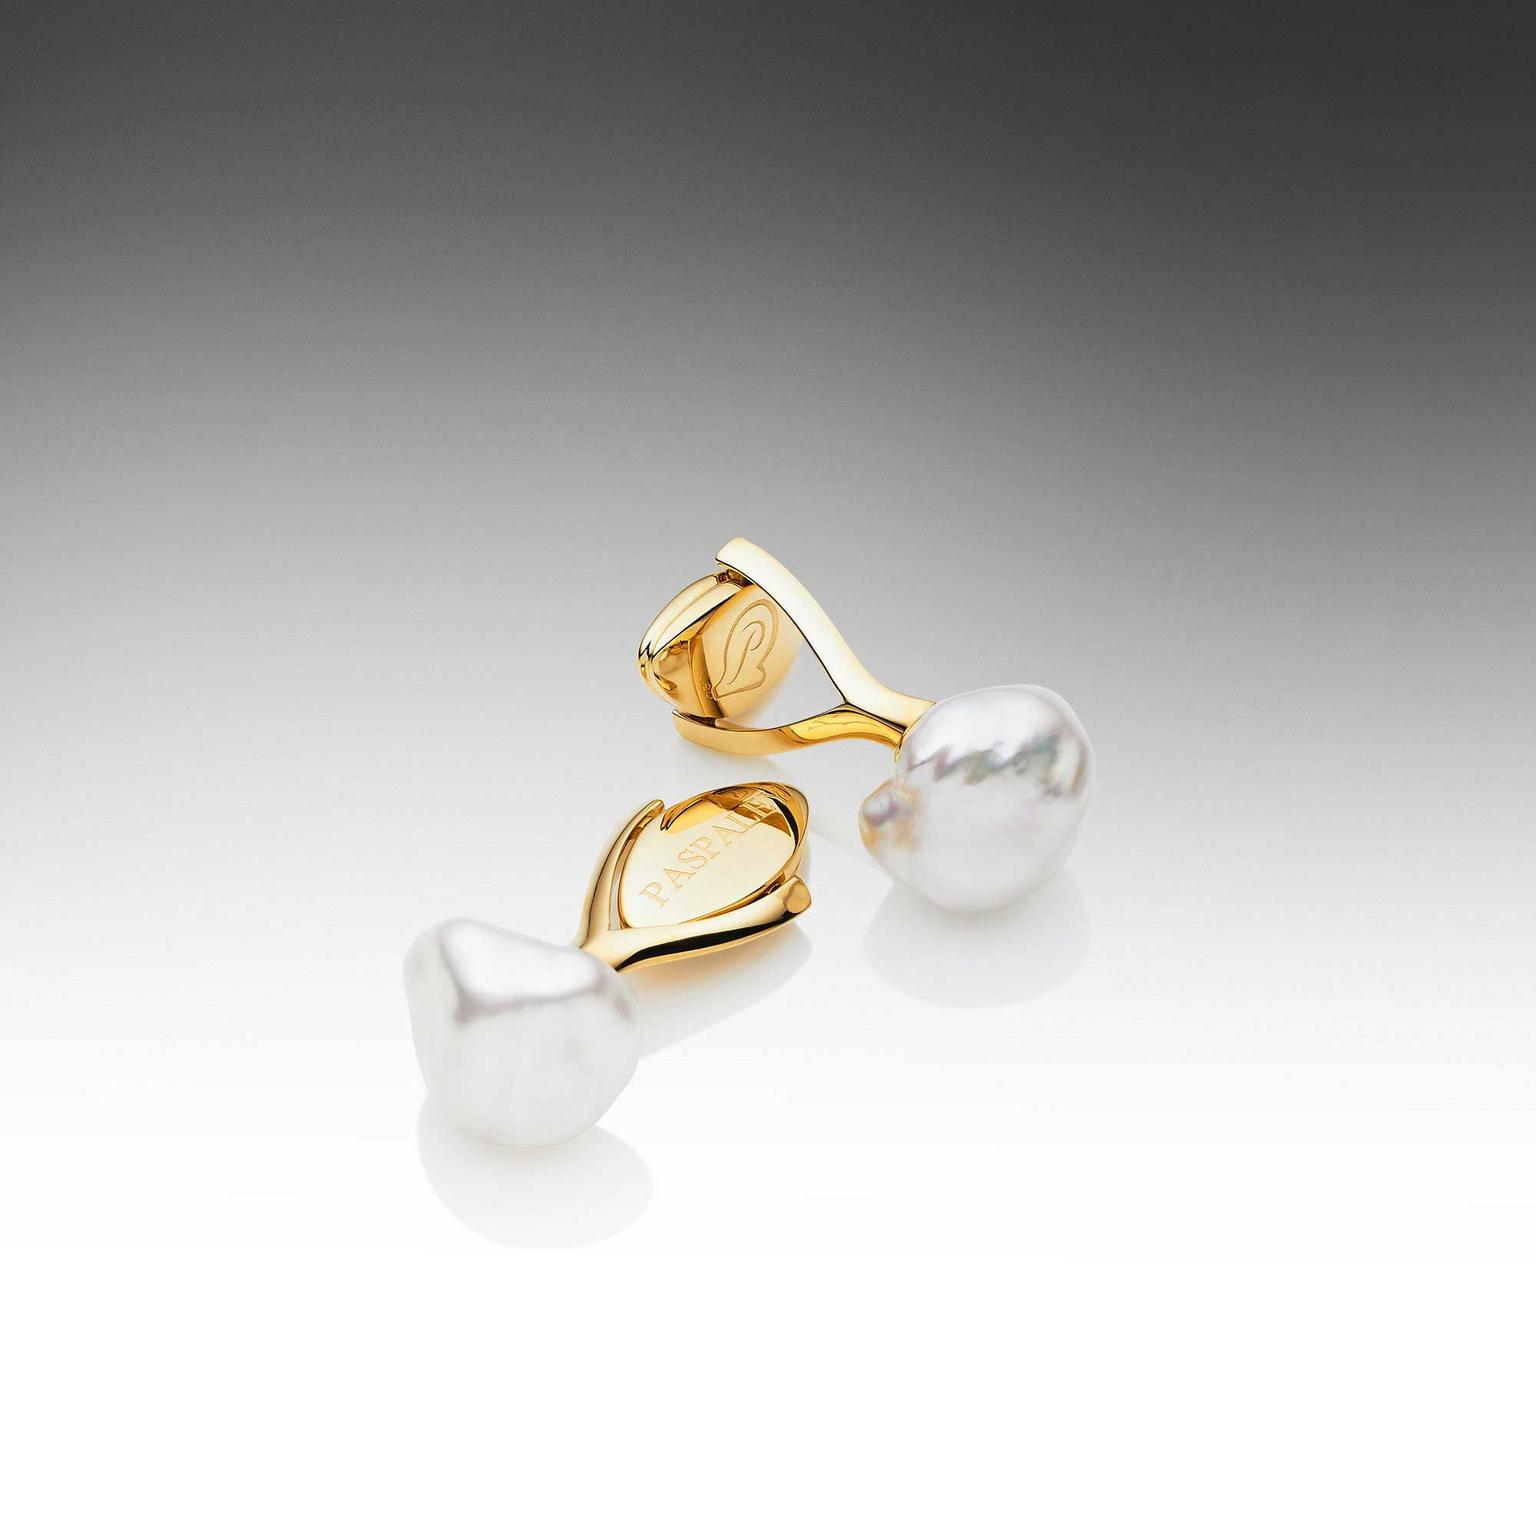 Paspaley yellow gold cufflinks with white keshi pearls